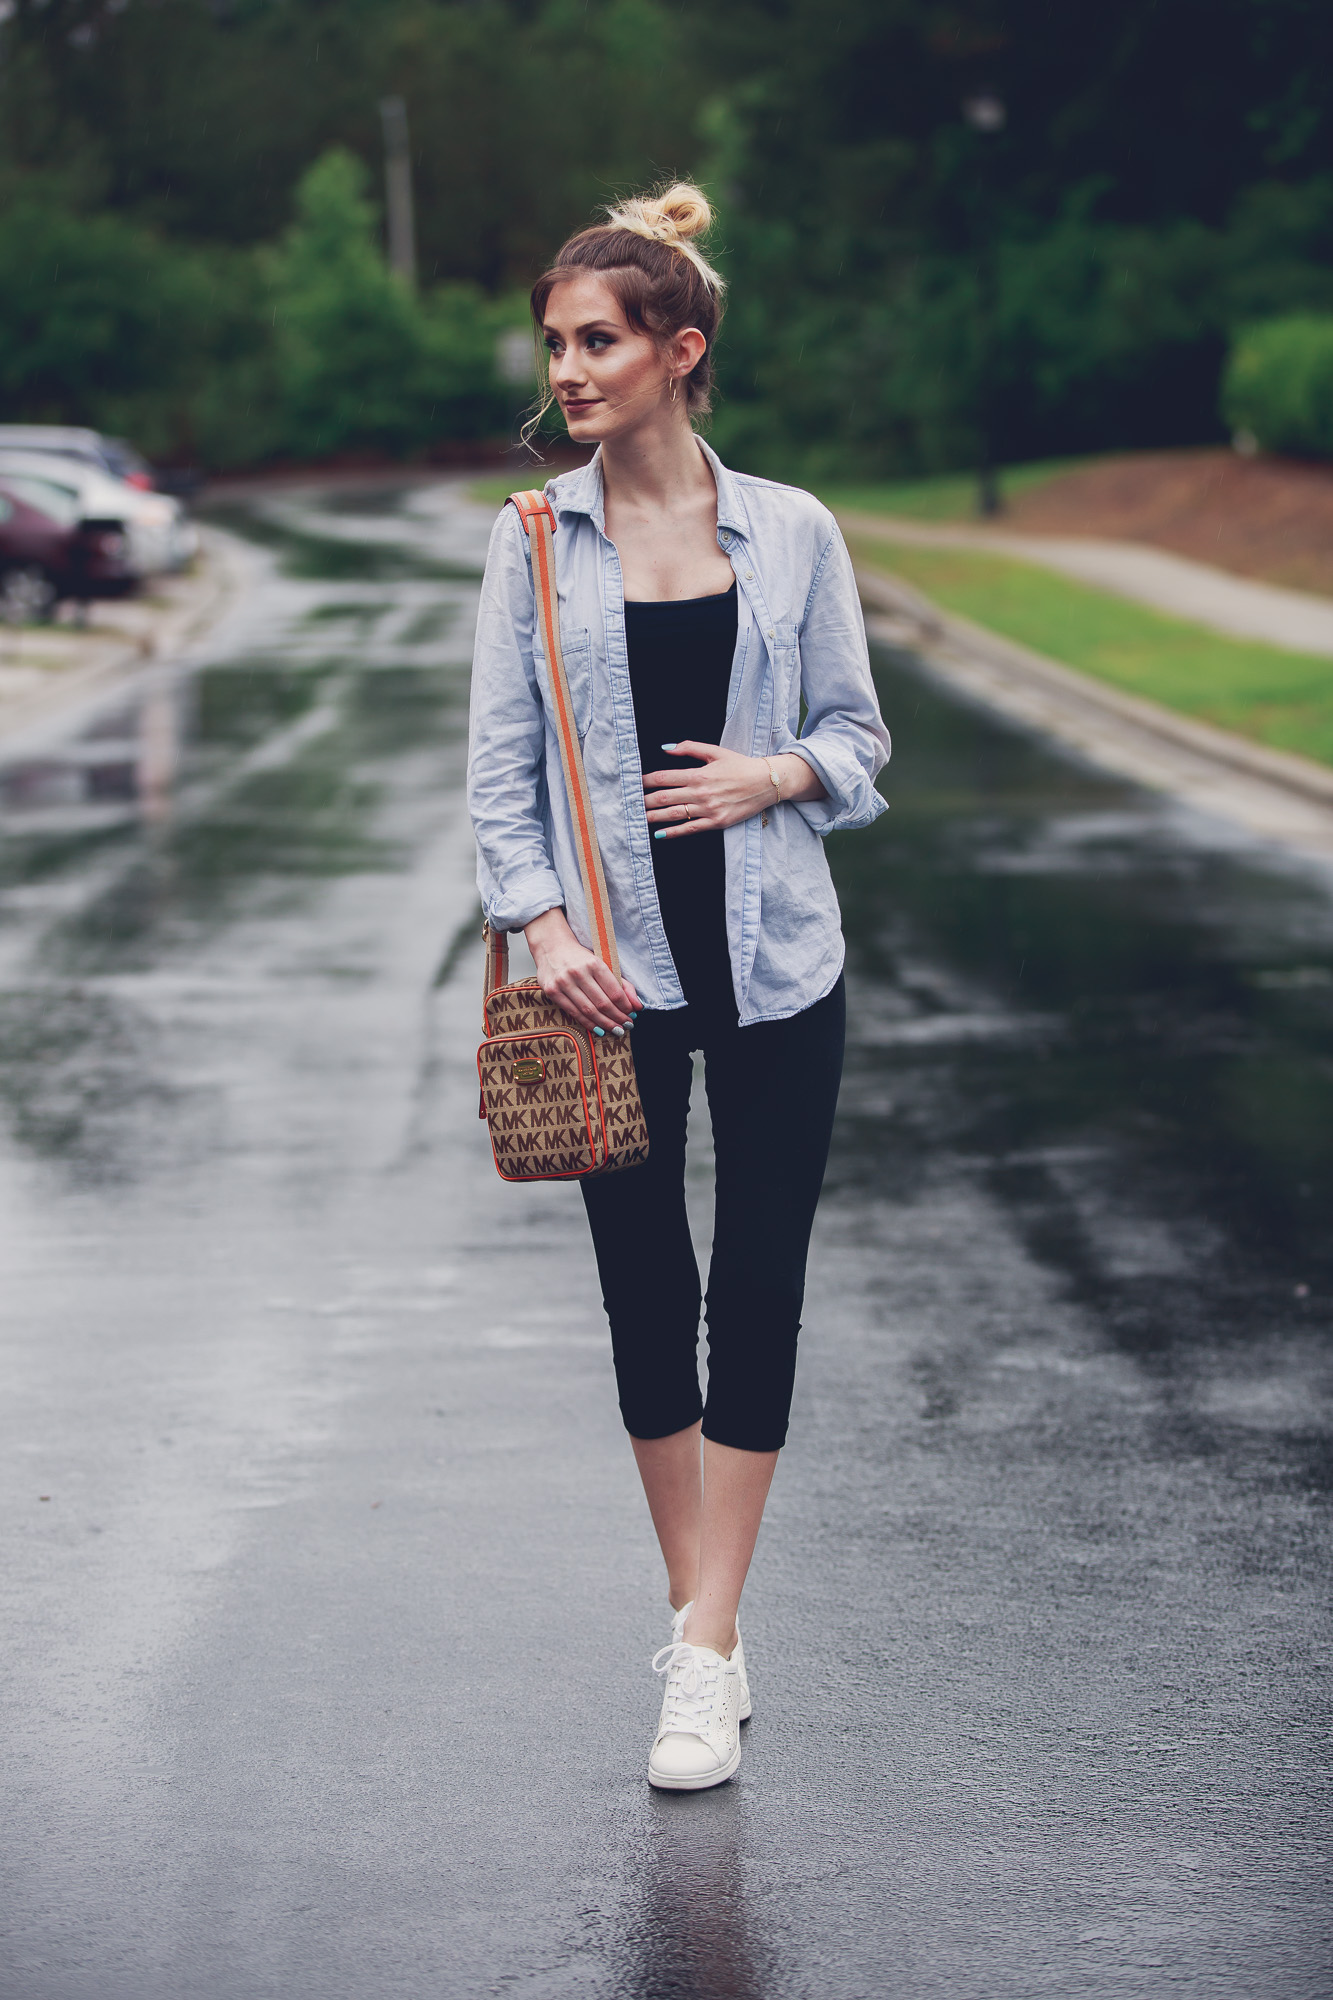 Fashion and lifestyle blogger Jessica Linn from Linn Style wearing a casual outfit: Target maternity leggings, an aeropostale tank top, and chambray button up, Target tennis shoes, Charming Charlie's earrings, and a Michael Kors purse in Cary North Carolina